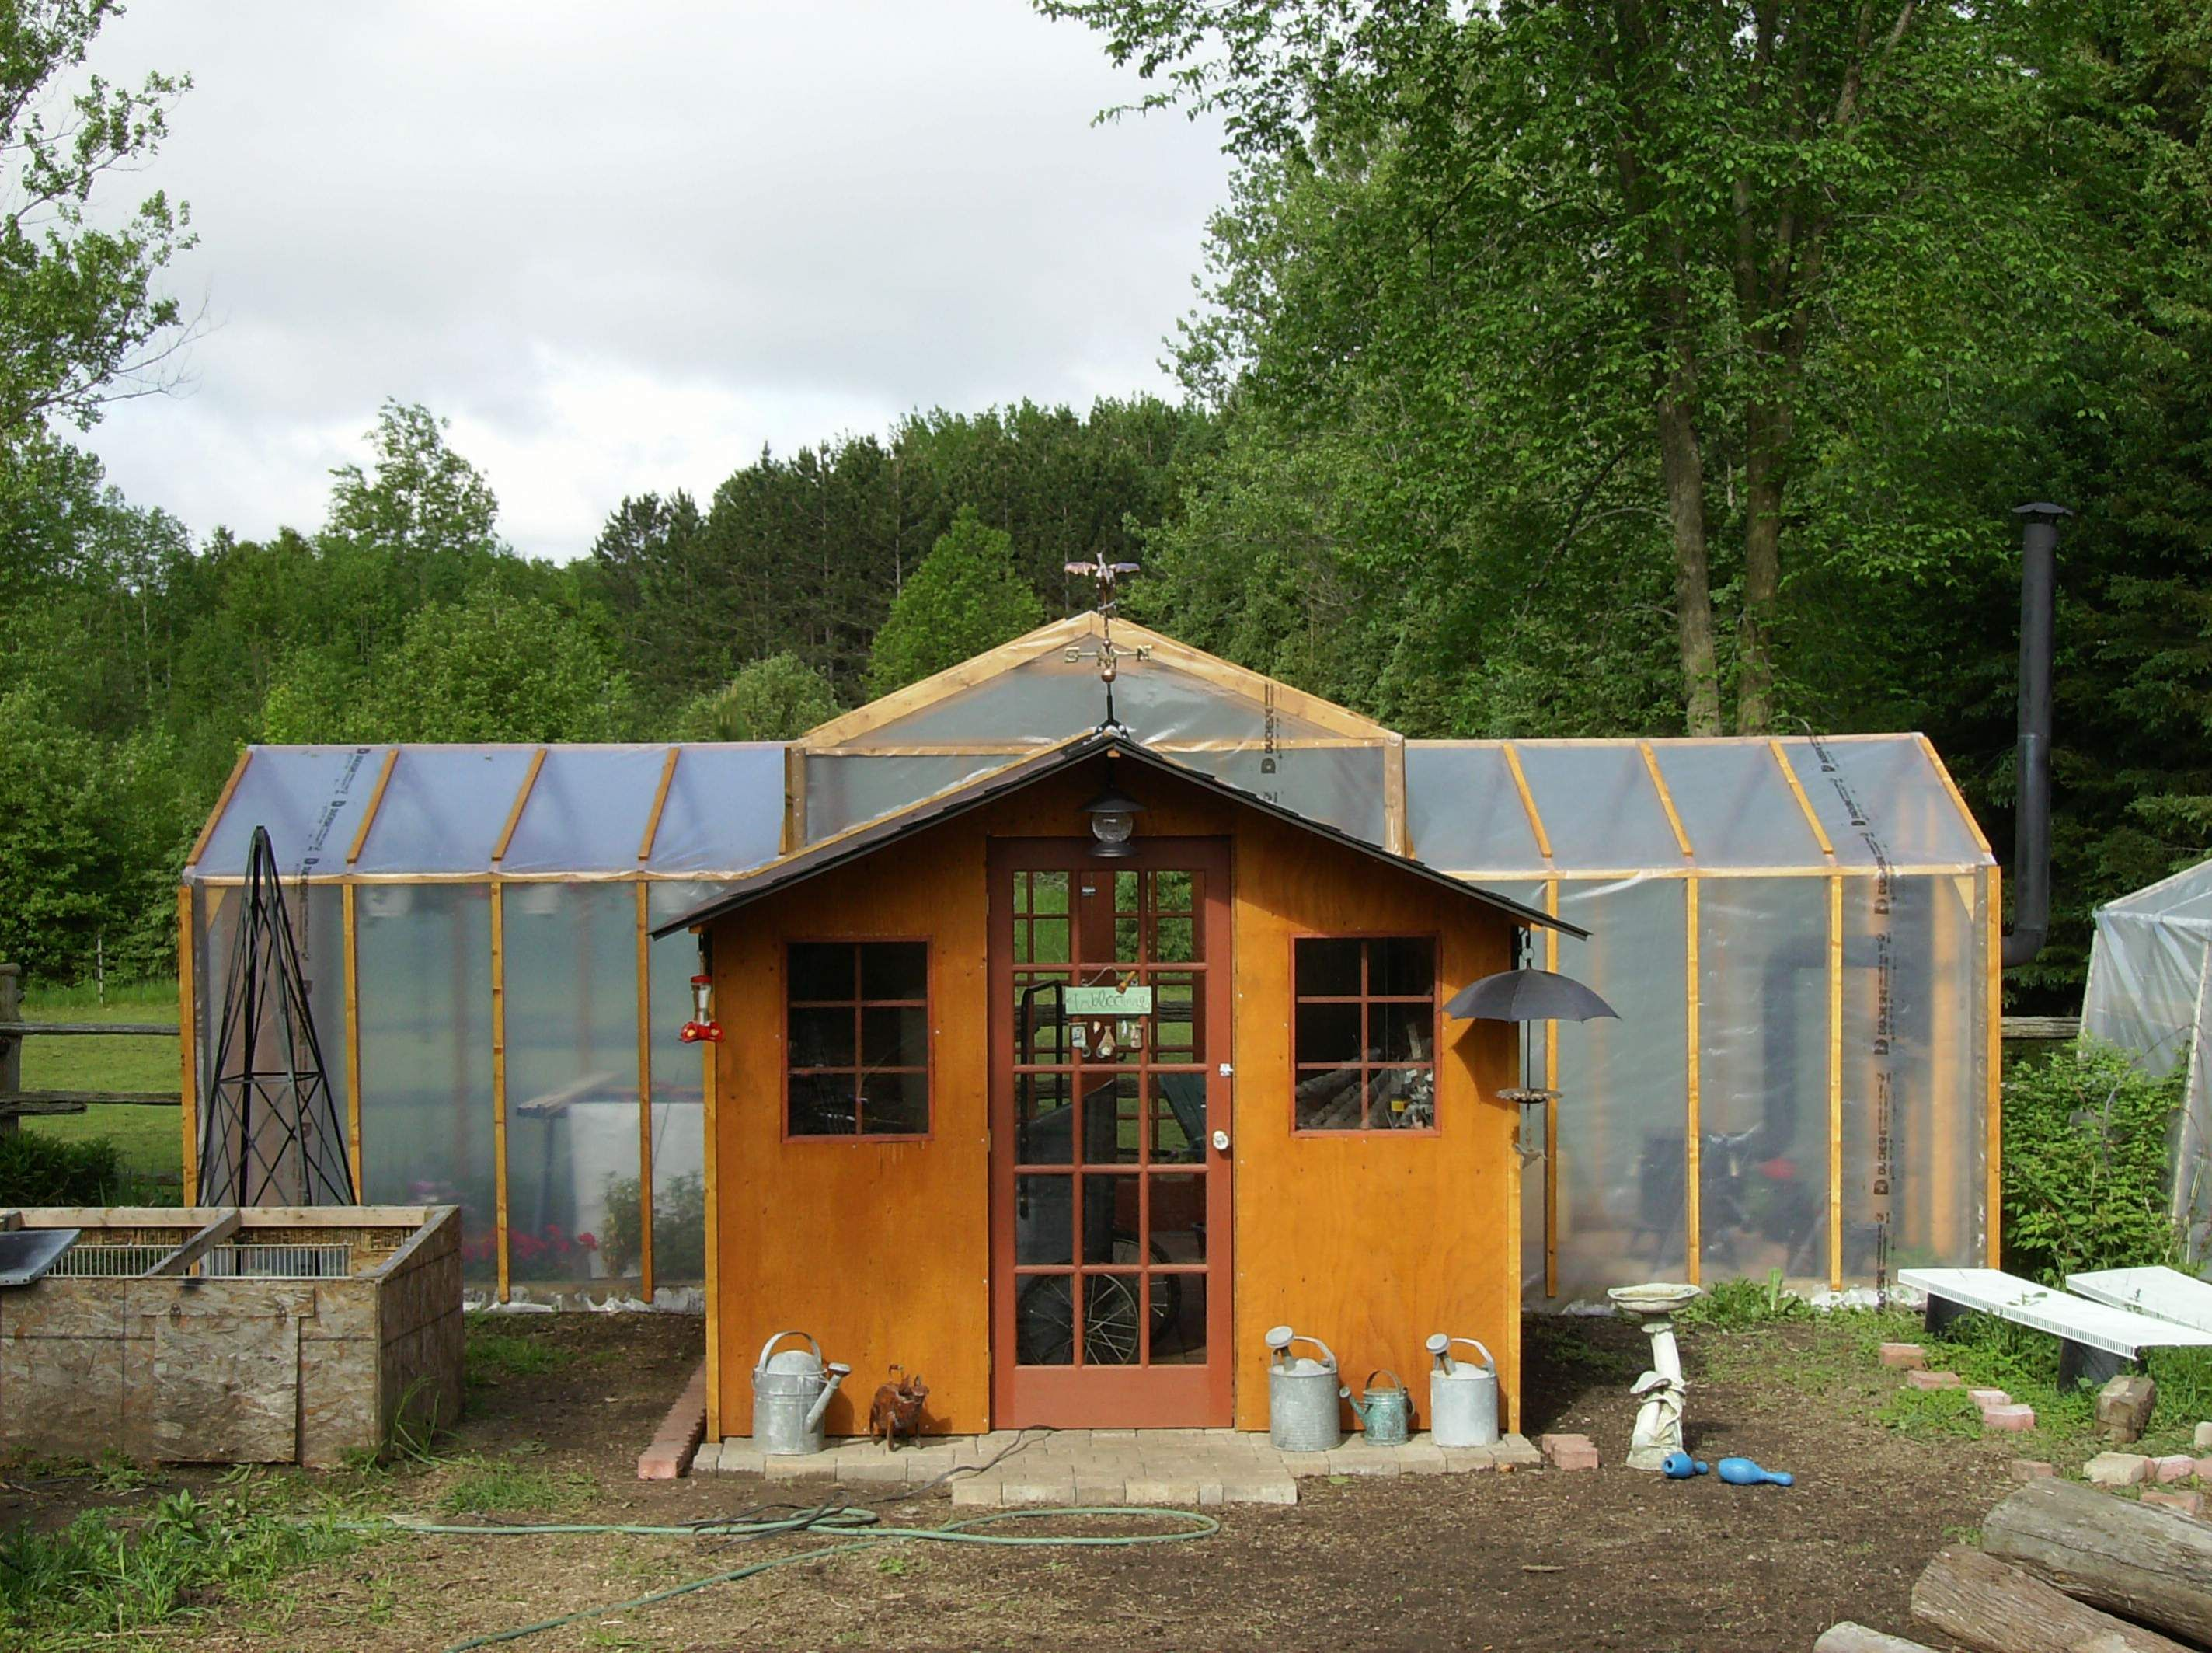 Garden Shed Greenhouse Project Small Budget